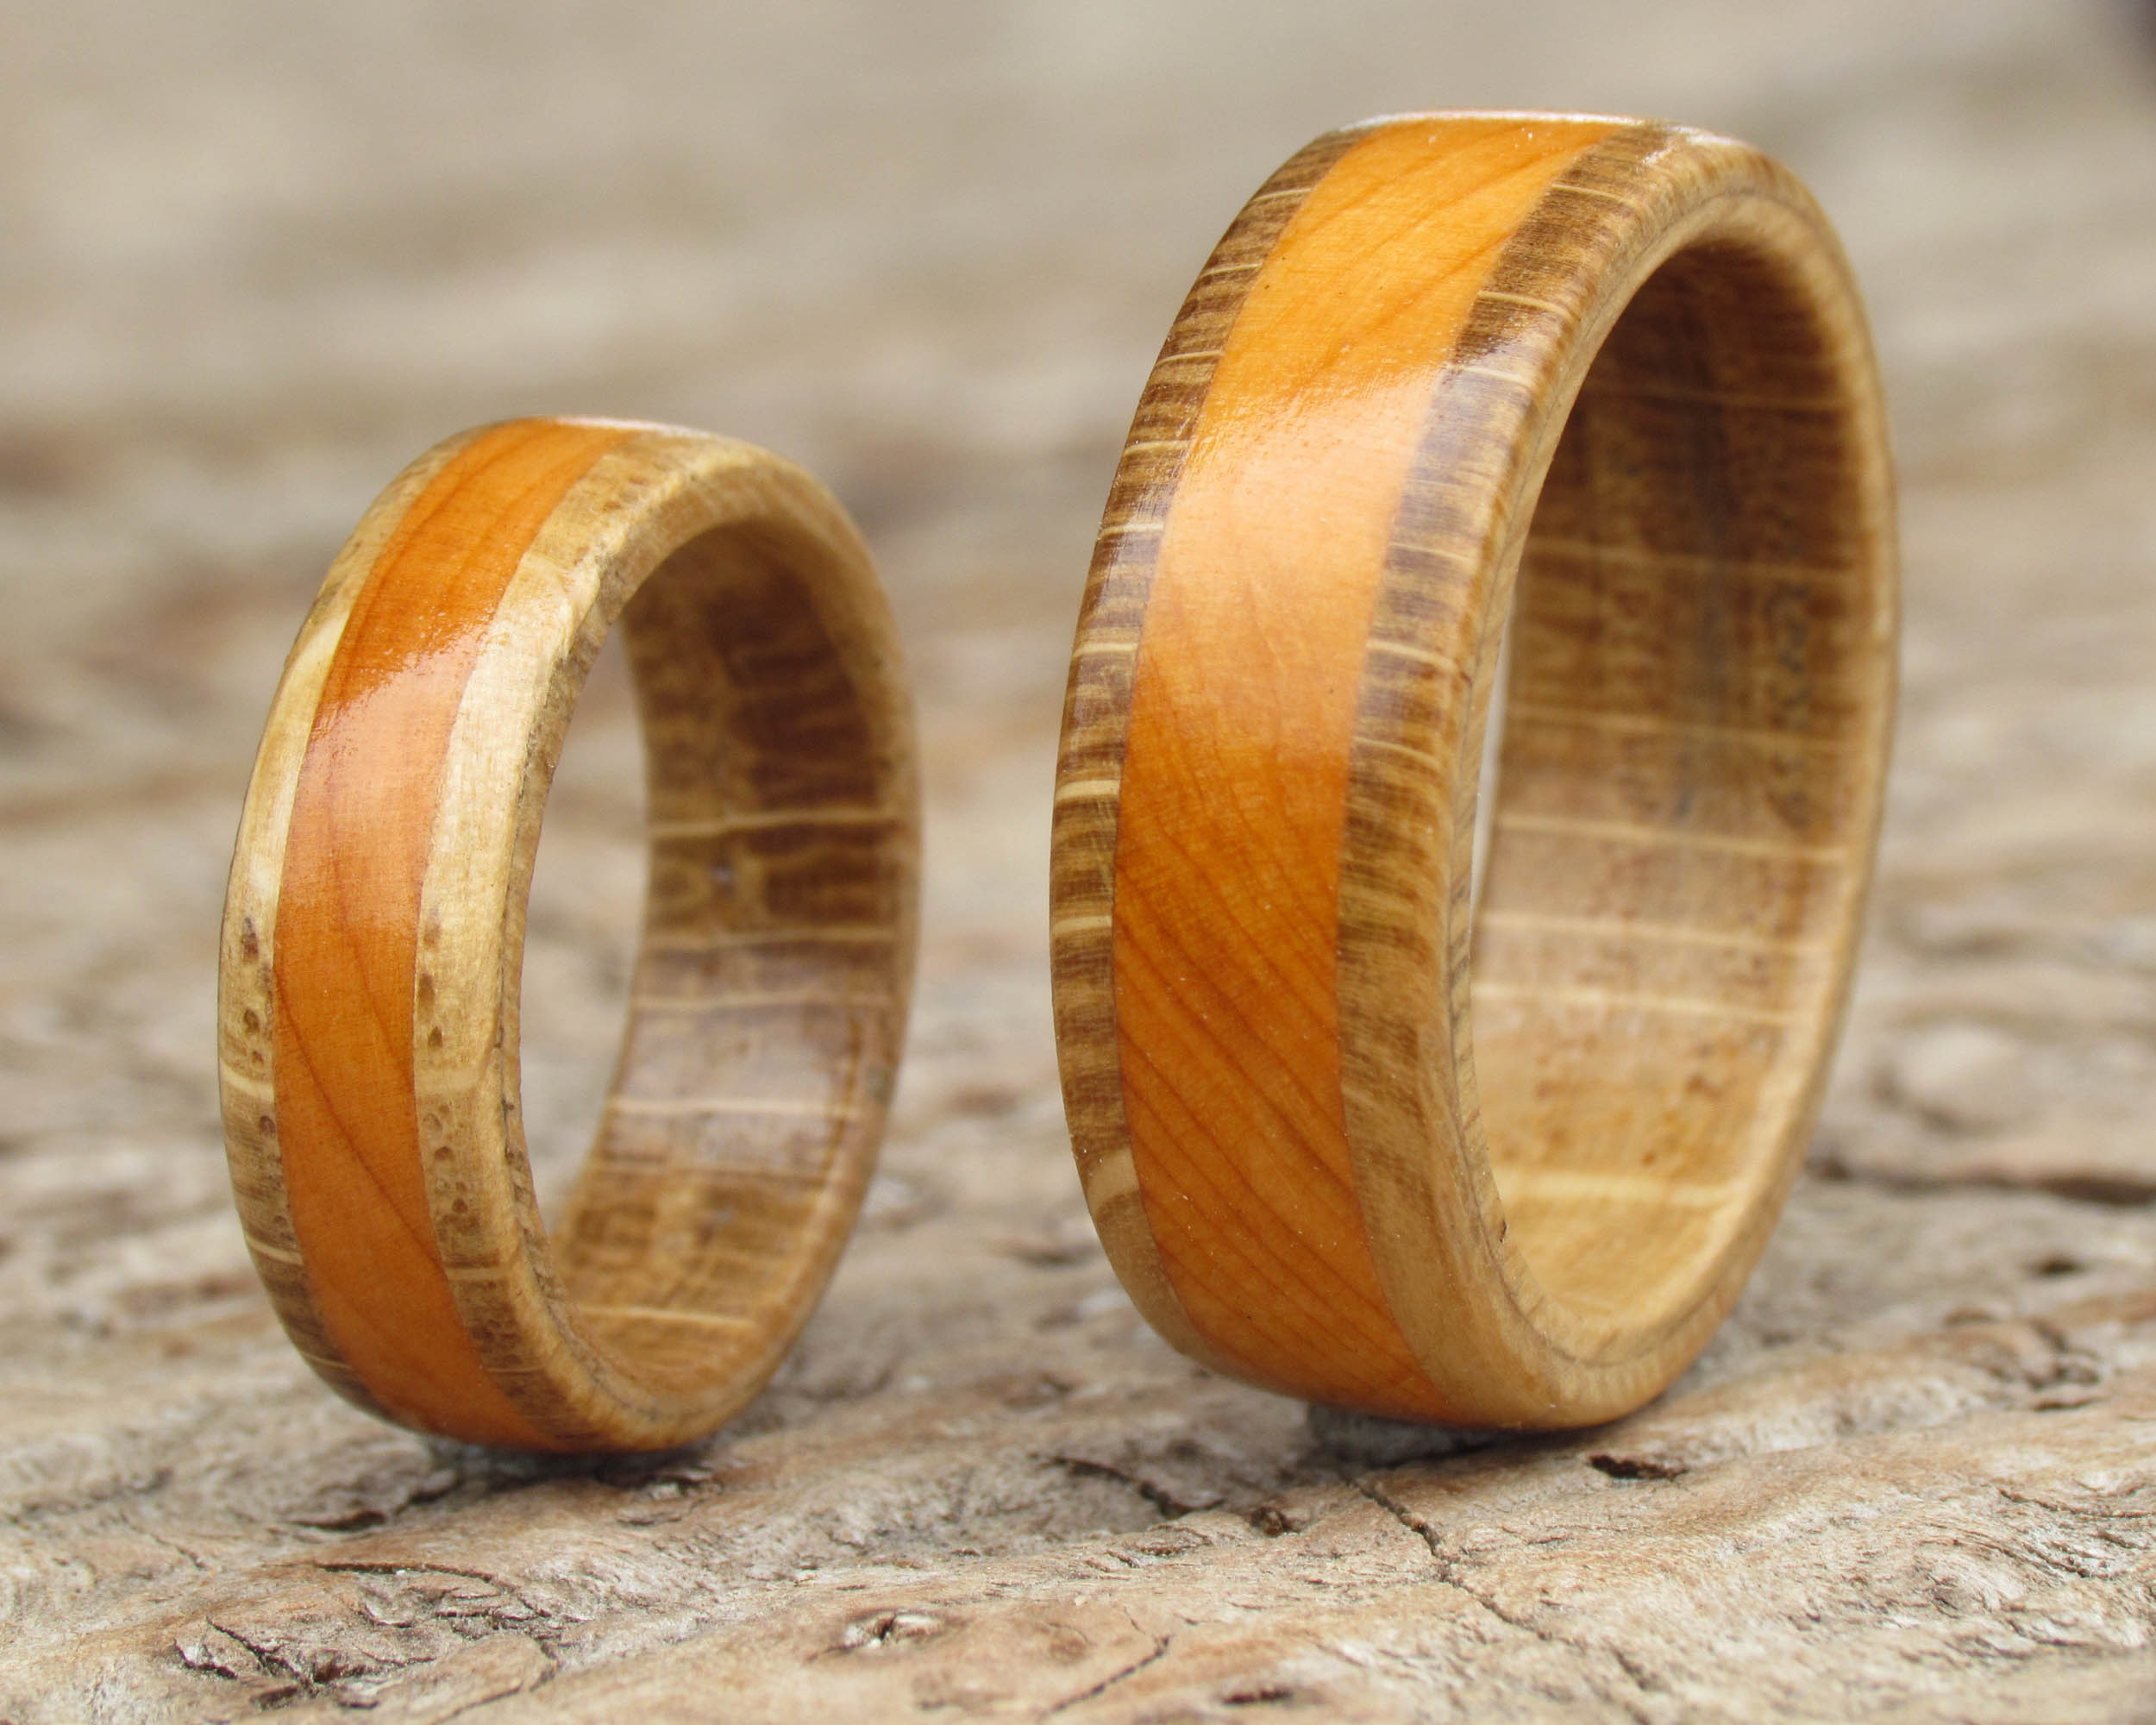 Oak and Yew wood ring